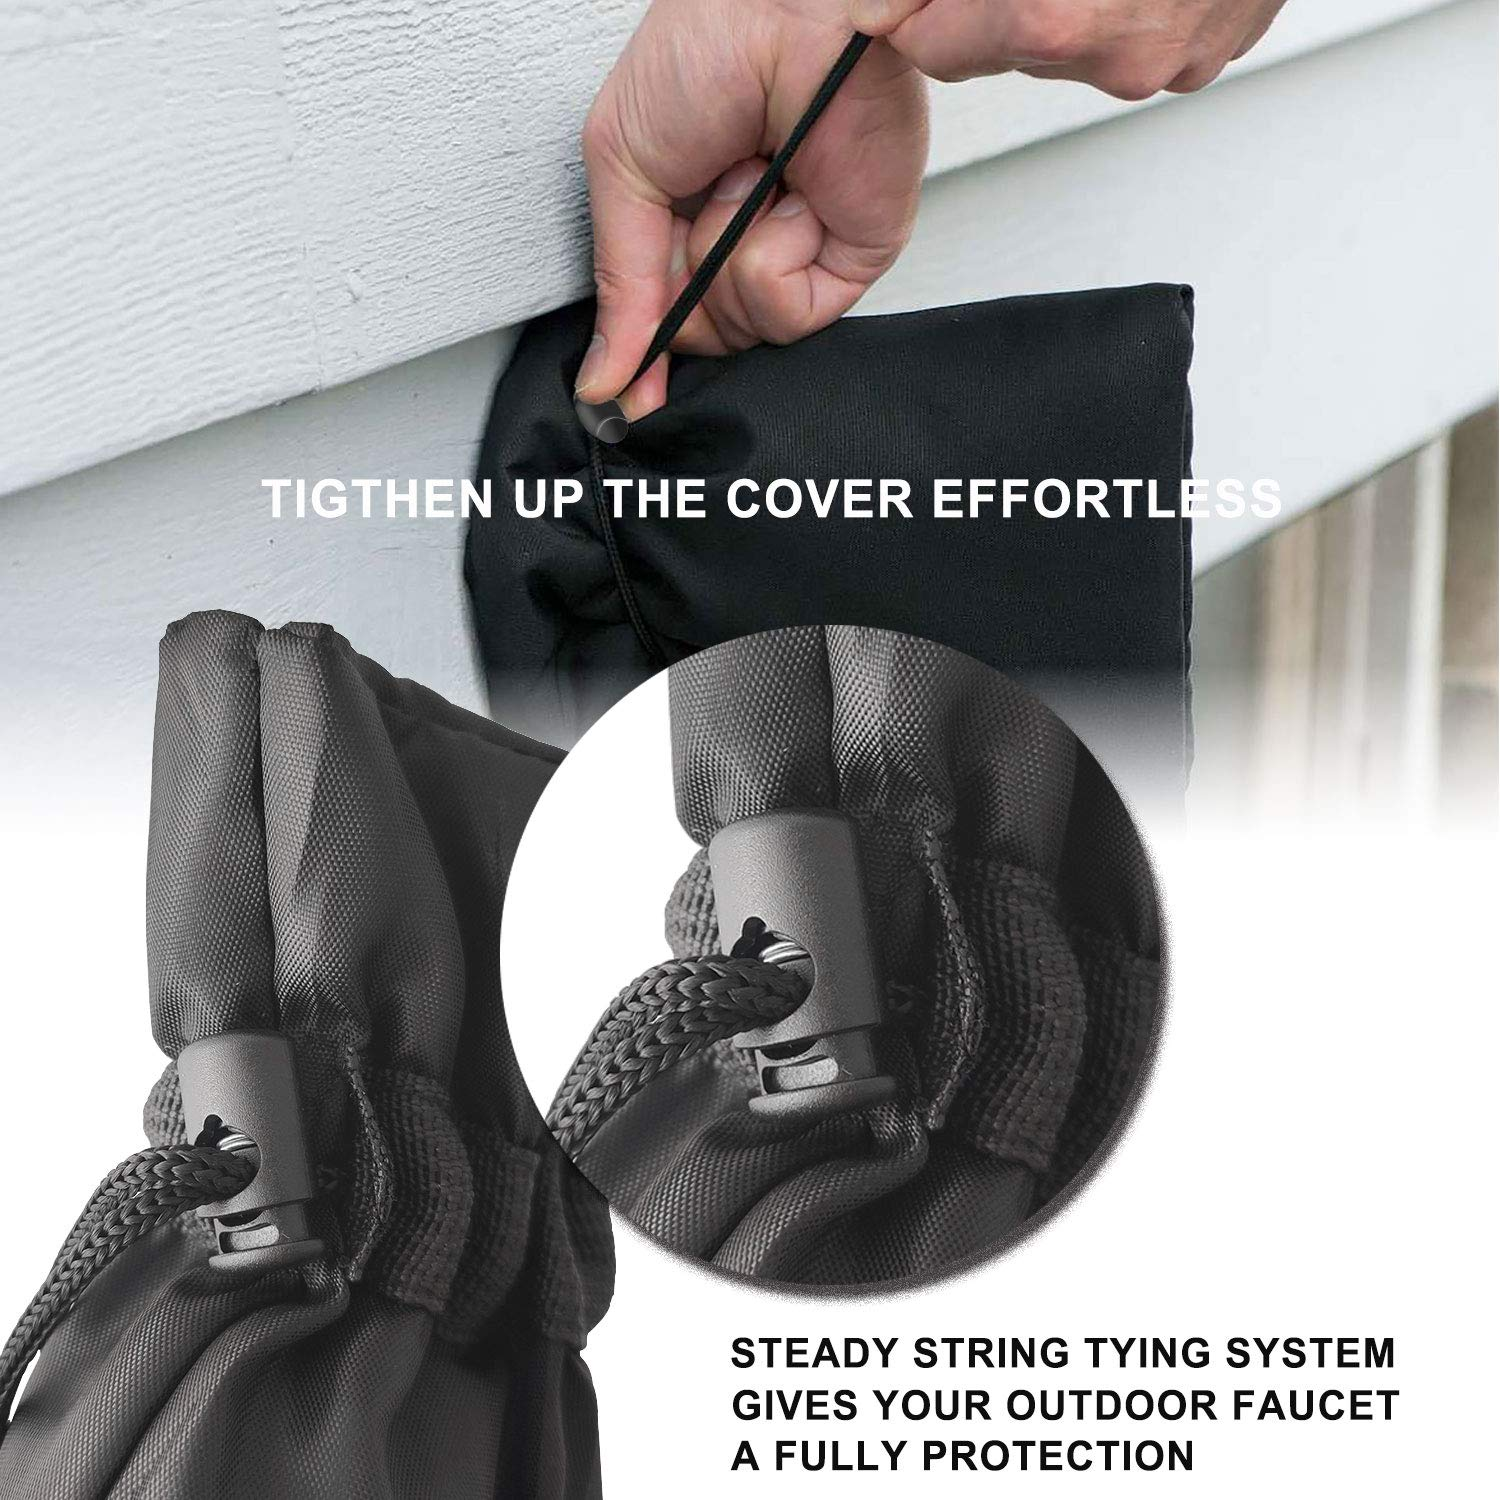 String Tying for Fully Freeze Protection Black Outdoor Tap//Spigot Cover for Winter Freeze Protection Set of 2 prowithlin Faucet Cover Socks for Winter